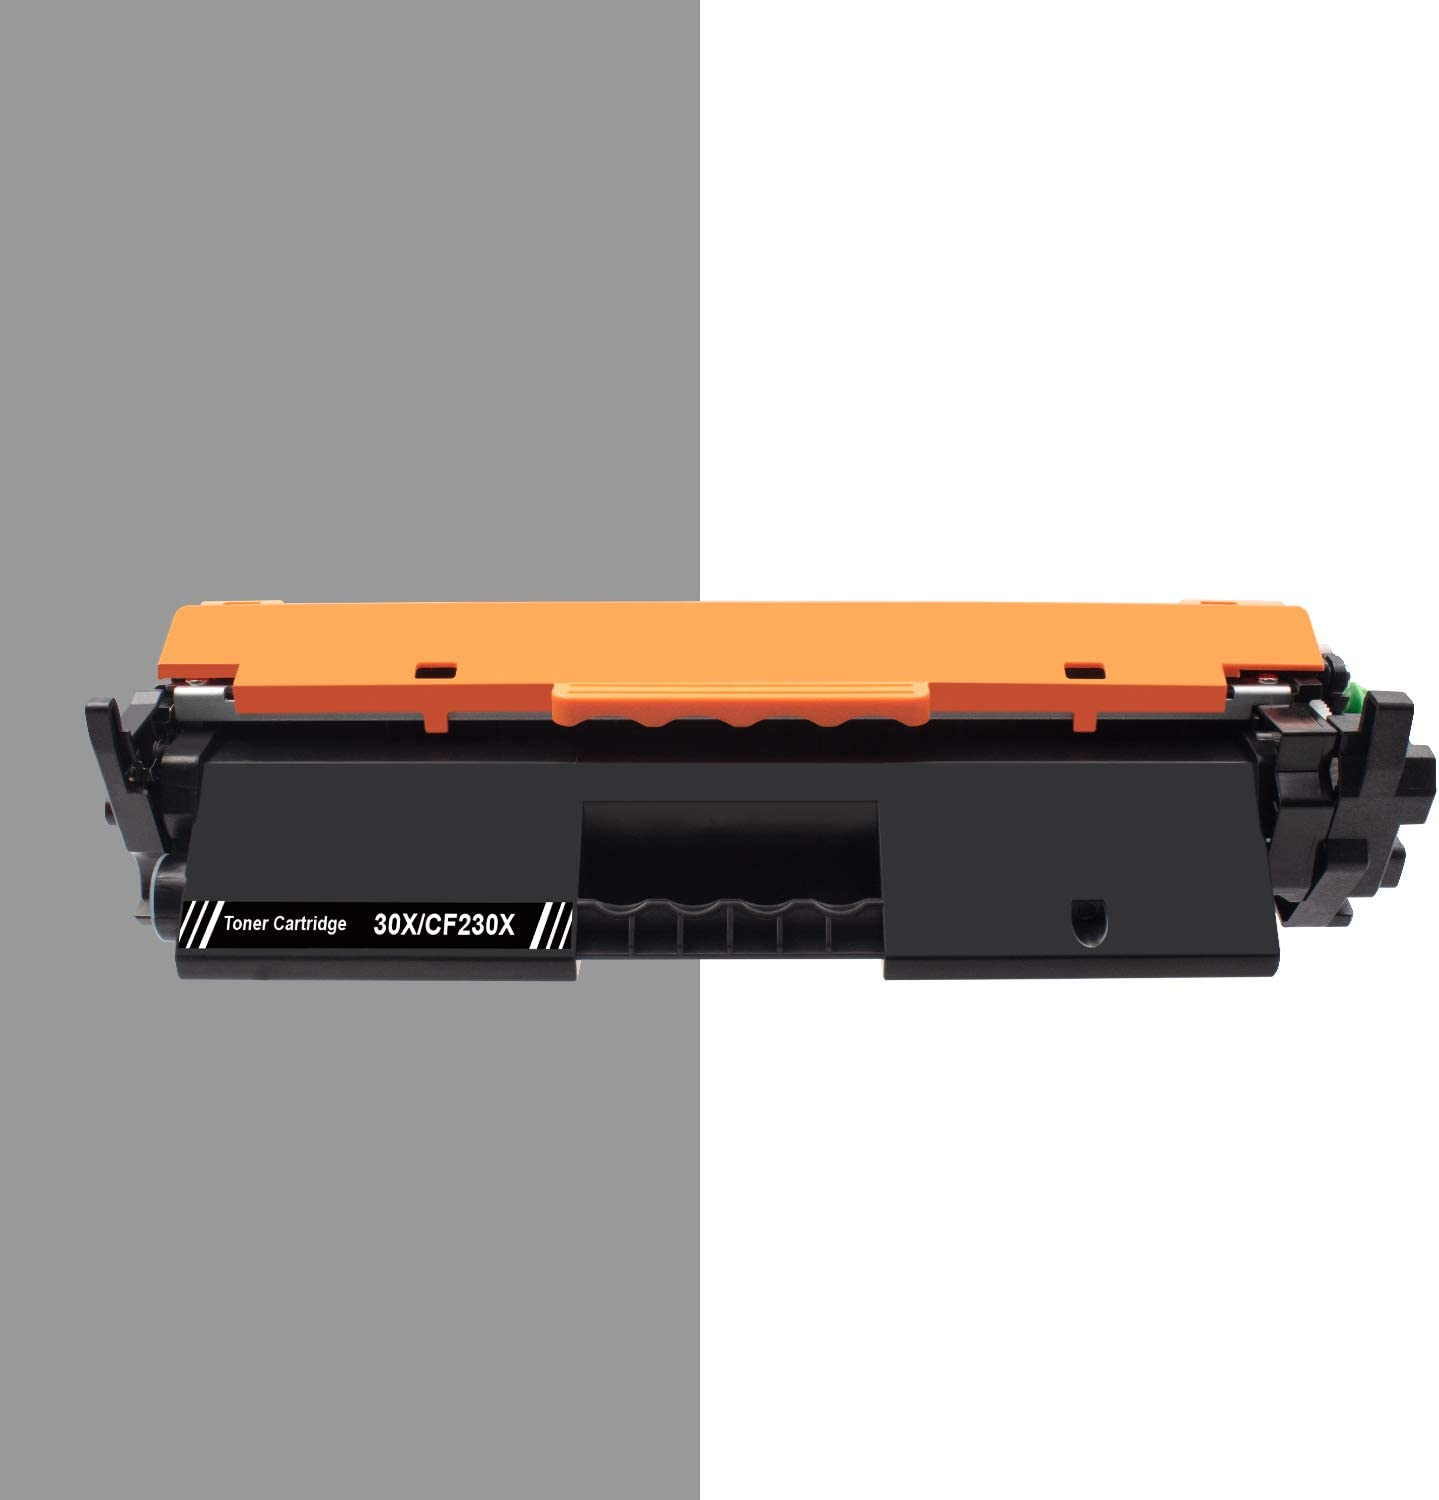 Black GPC Image Compatible Toner Cartridge Replacement for HP 30X CF230X 30A CF230A to use with Laserjet Pro M227 M203